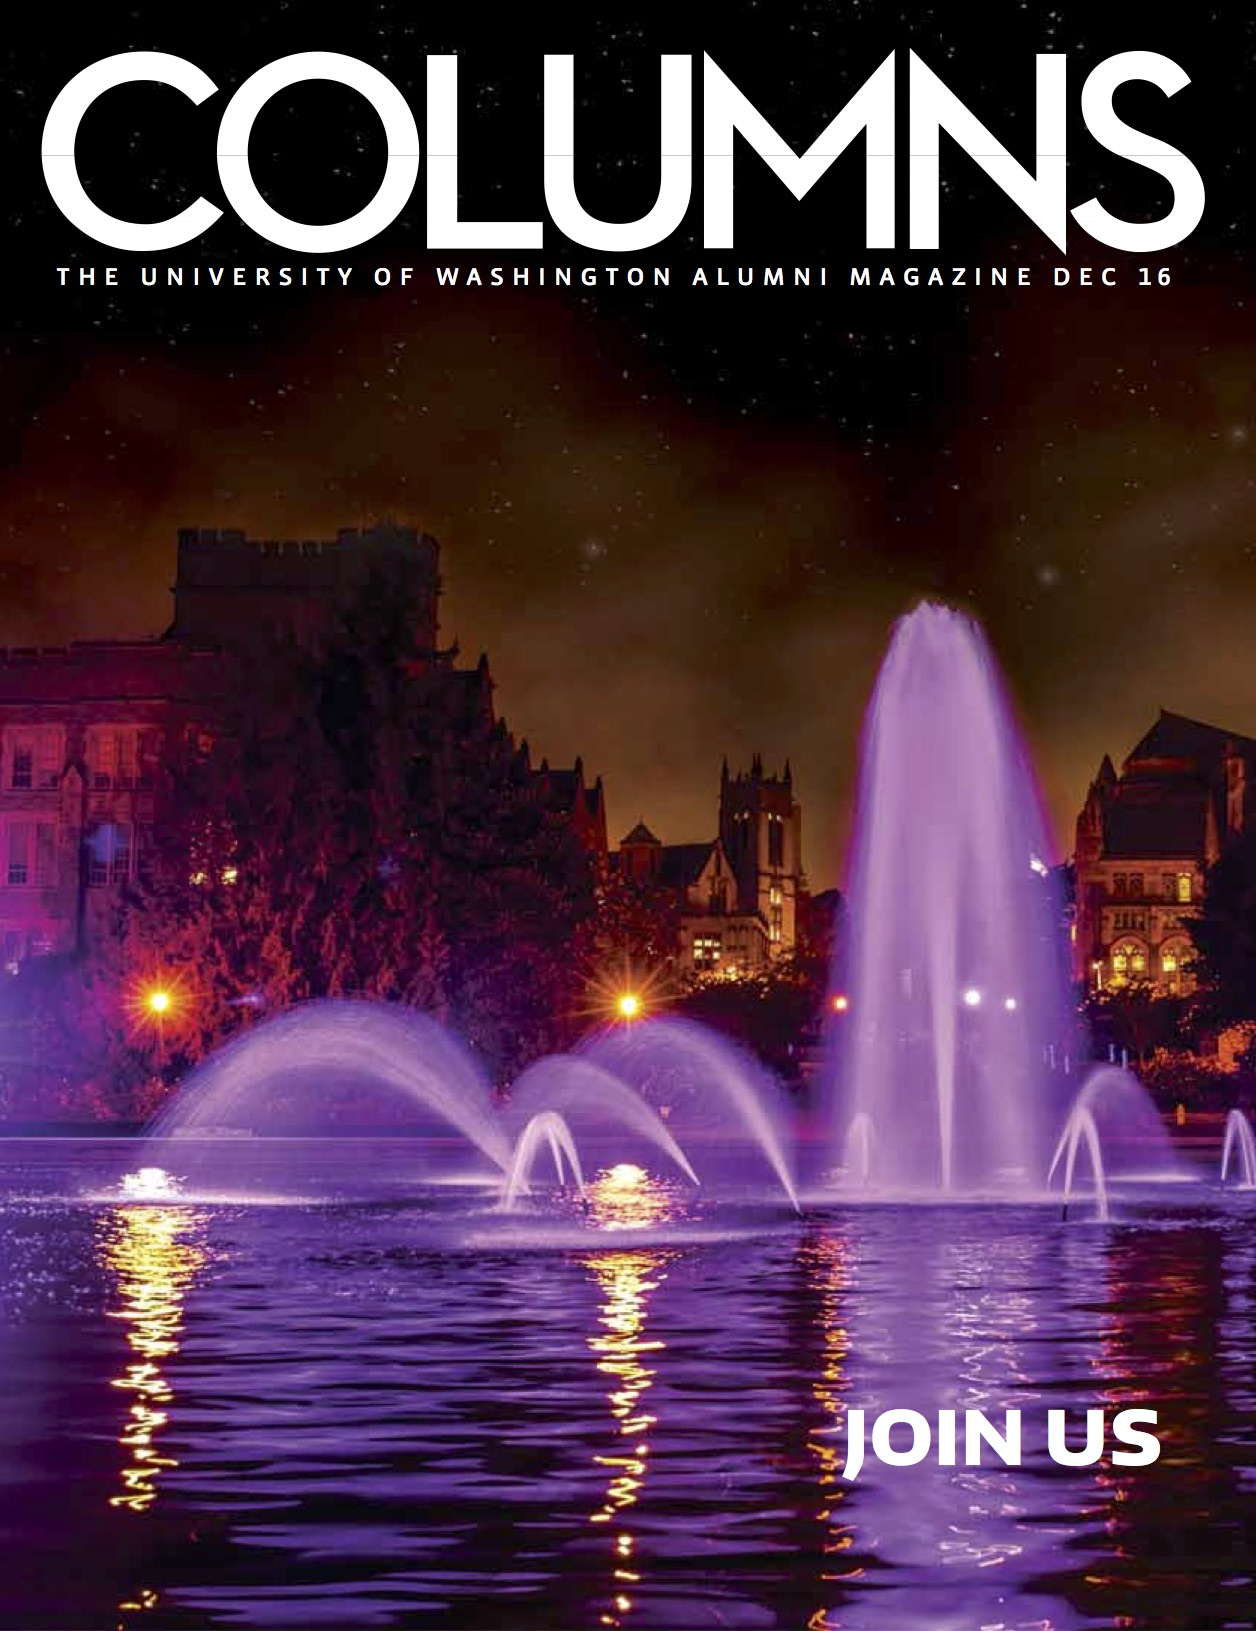 Columns Archive | Past issues of Columns, the University of